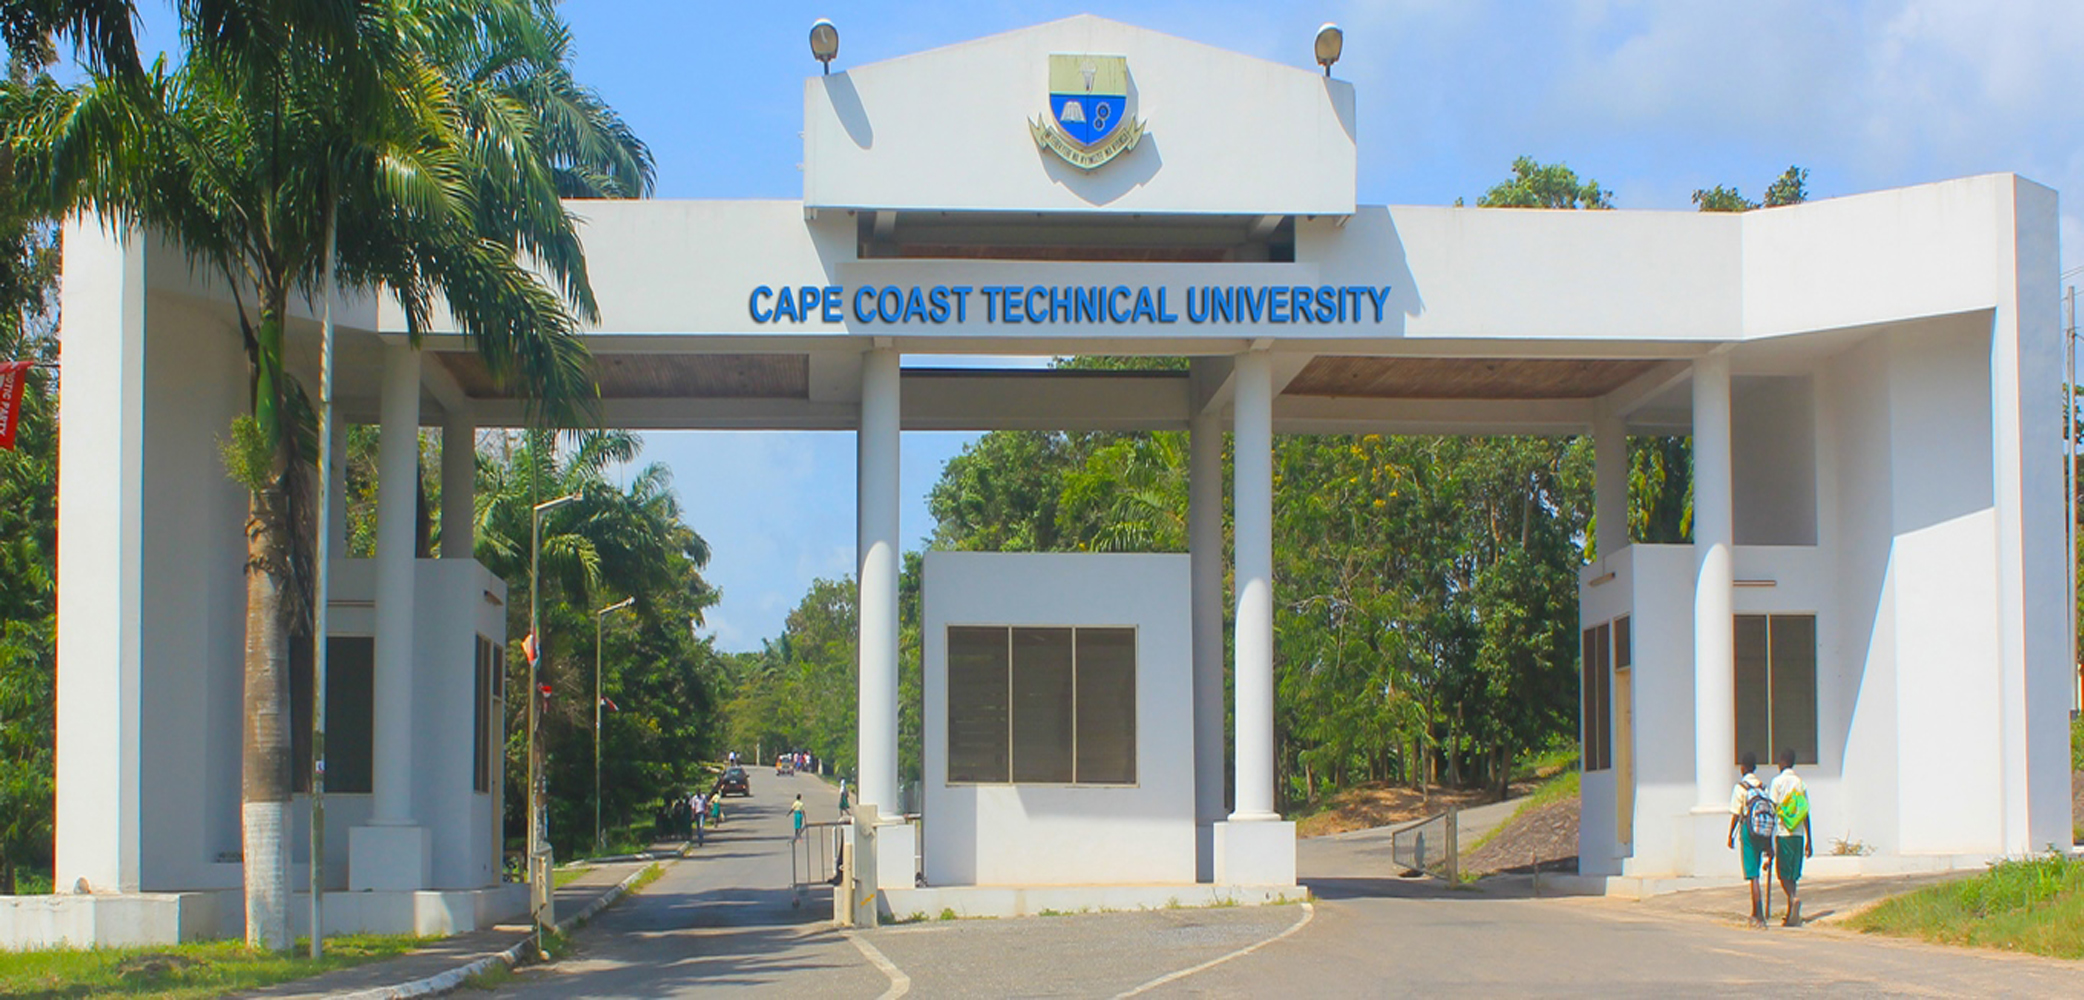 cape coast polytechnic Find researchers and browse departments, publications, full-texts, contact details and general information related to cape coast polytechnic.